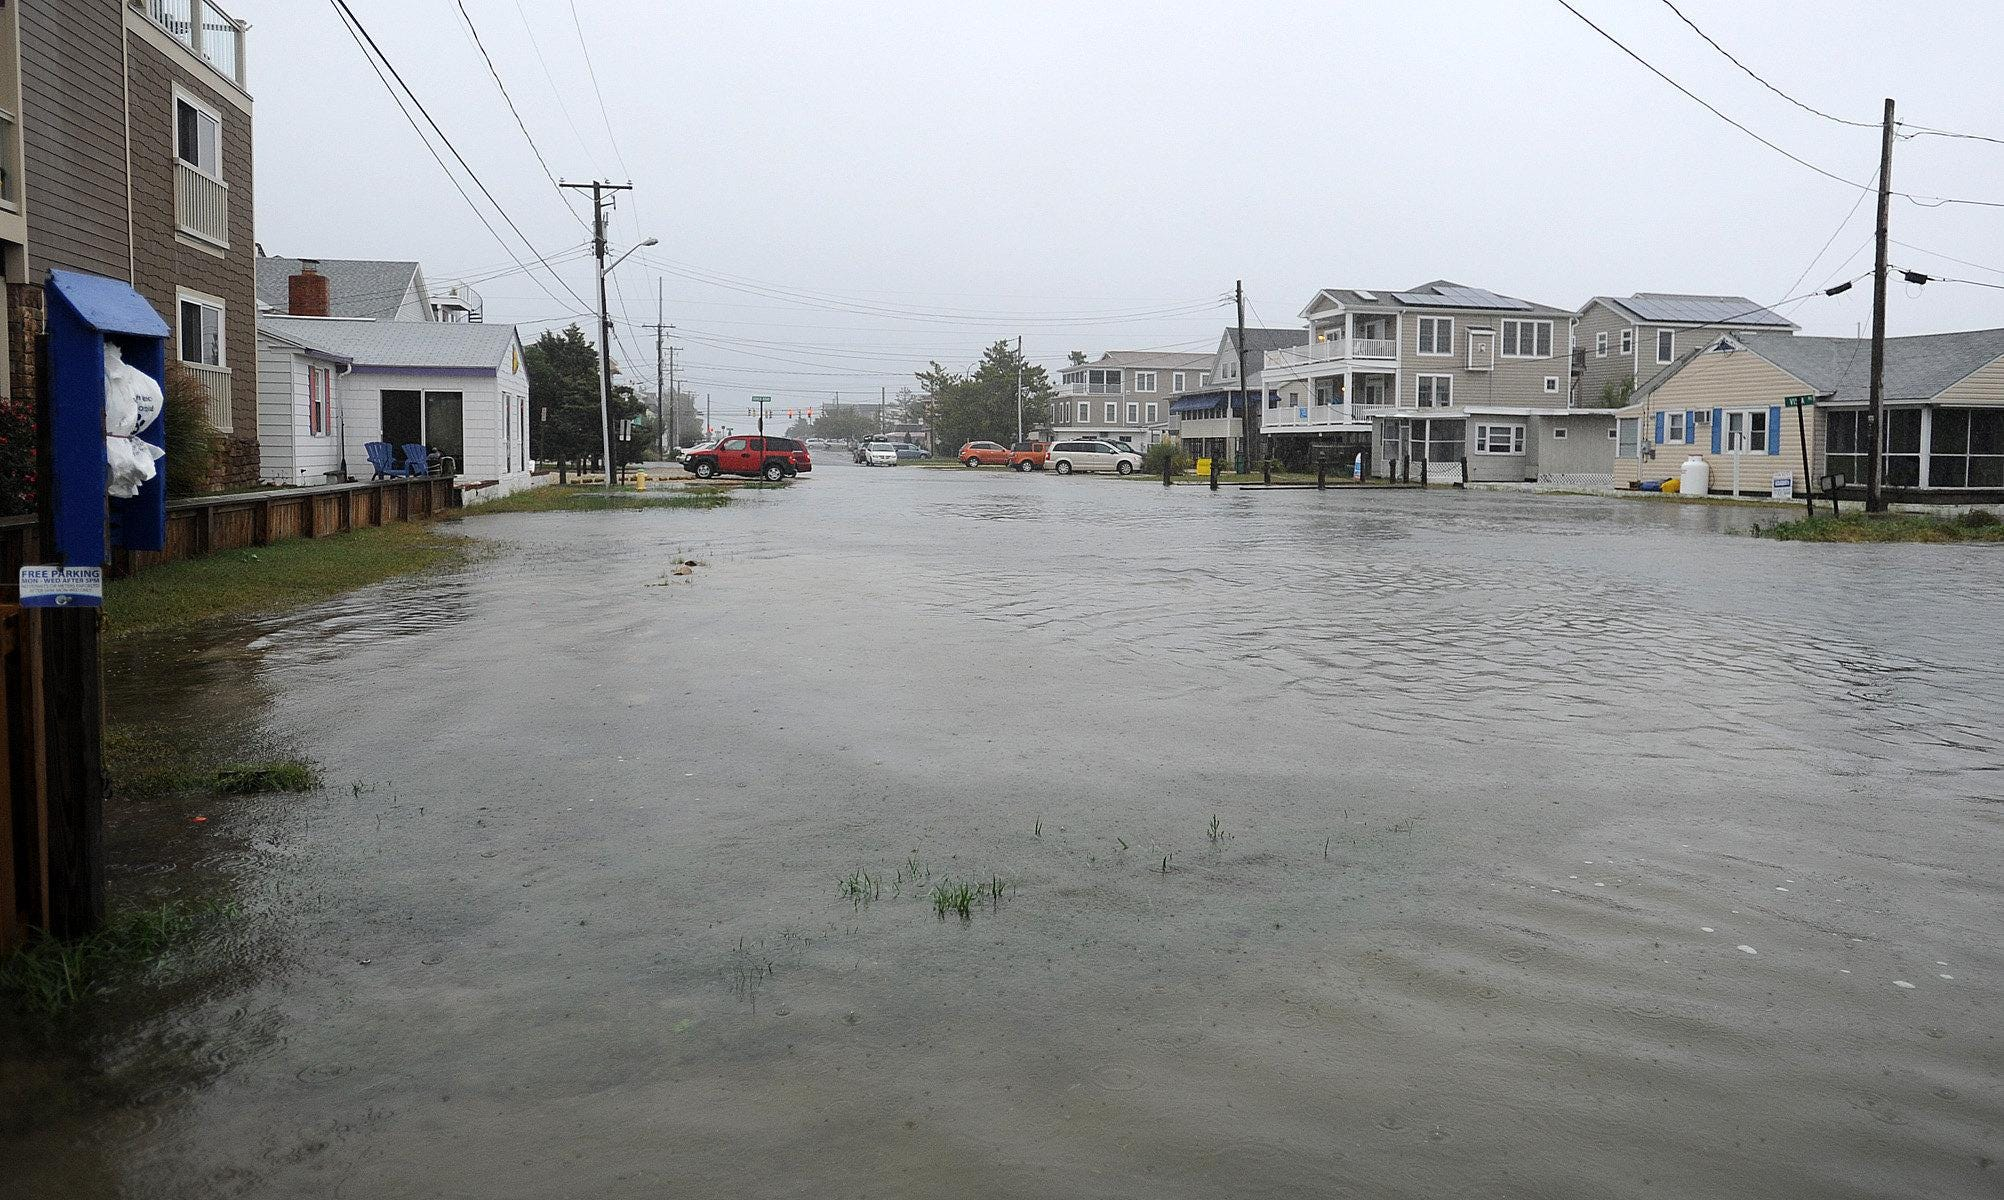 New report shows thousands of Delaware homes, millions in property value, at risk of sea level rise